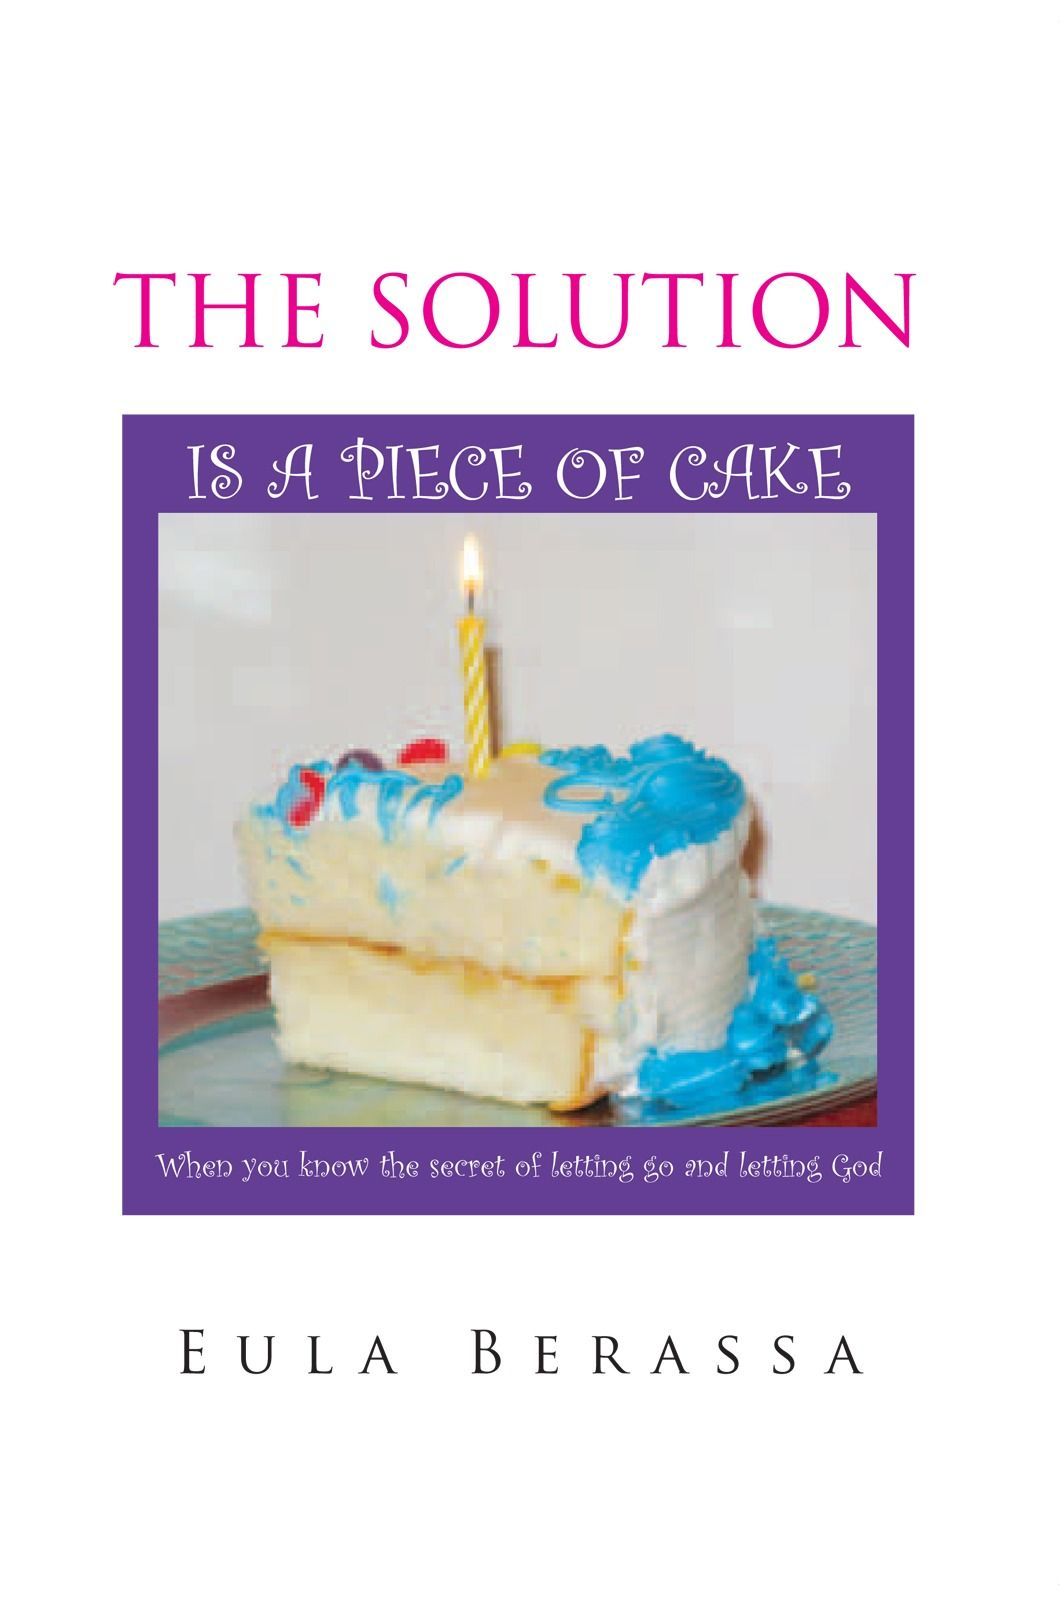 THE SOLUTION IS A PIECE OF CAKE